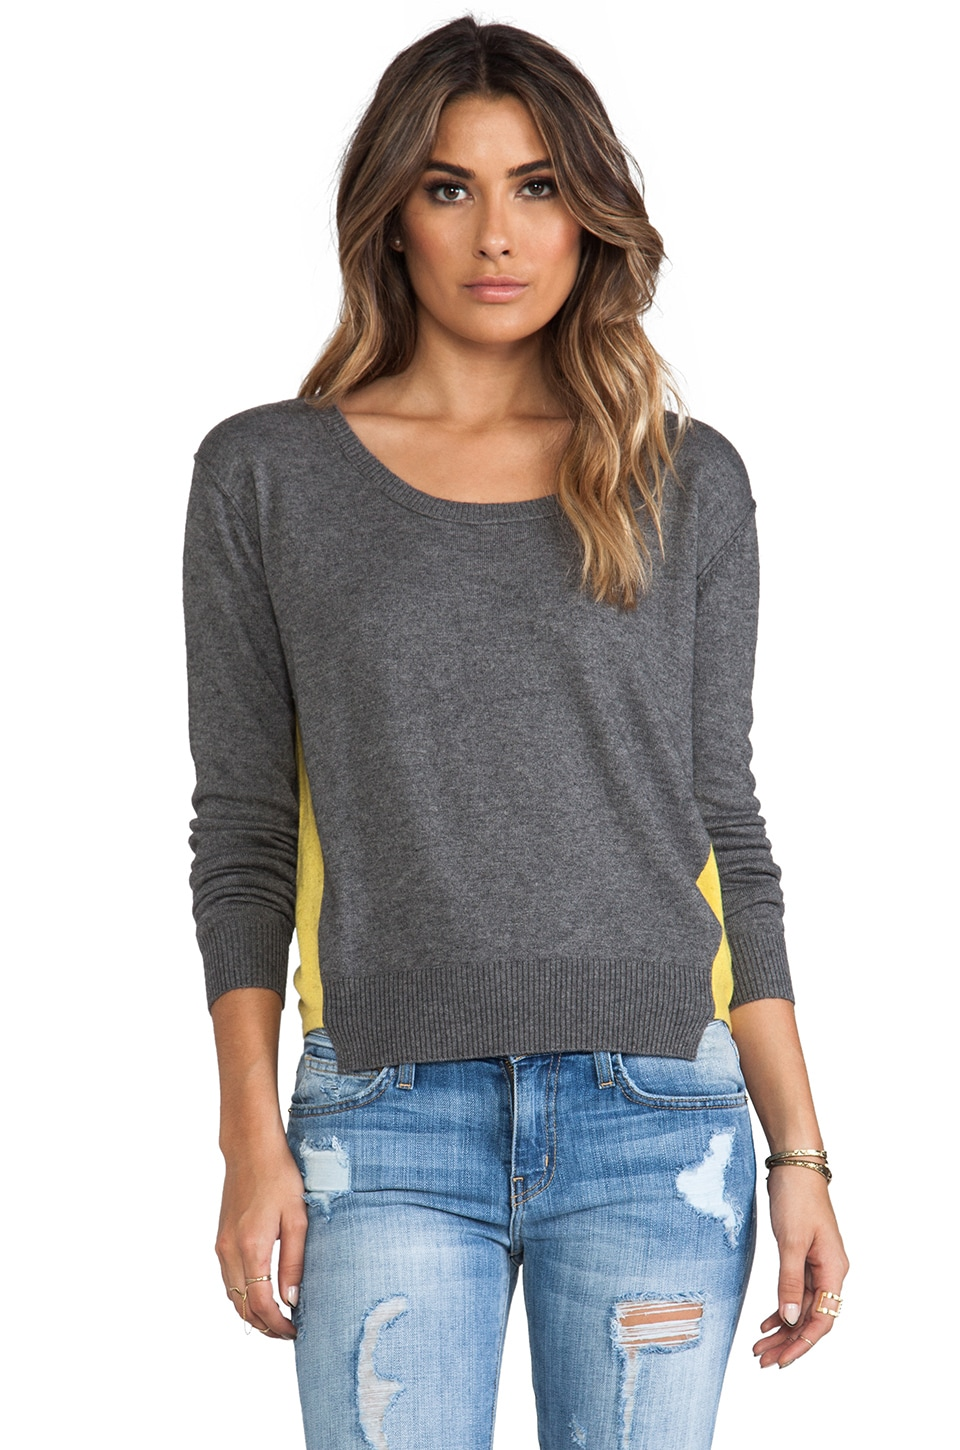 Central Park West Barrington Colorblock Sweater in Grey